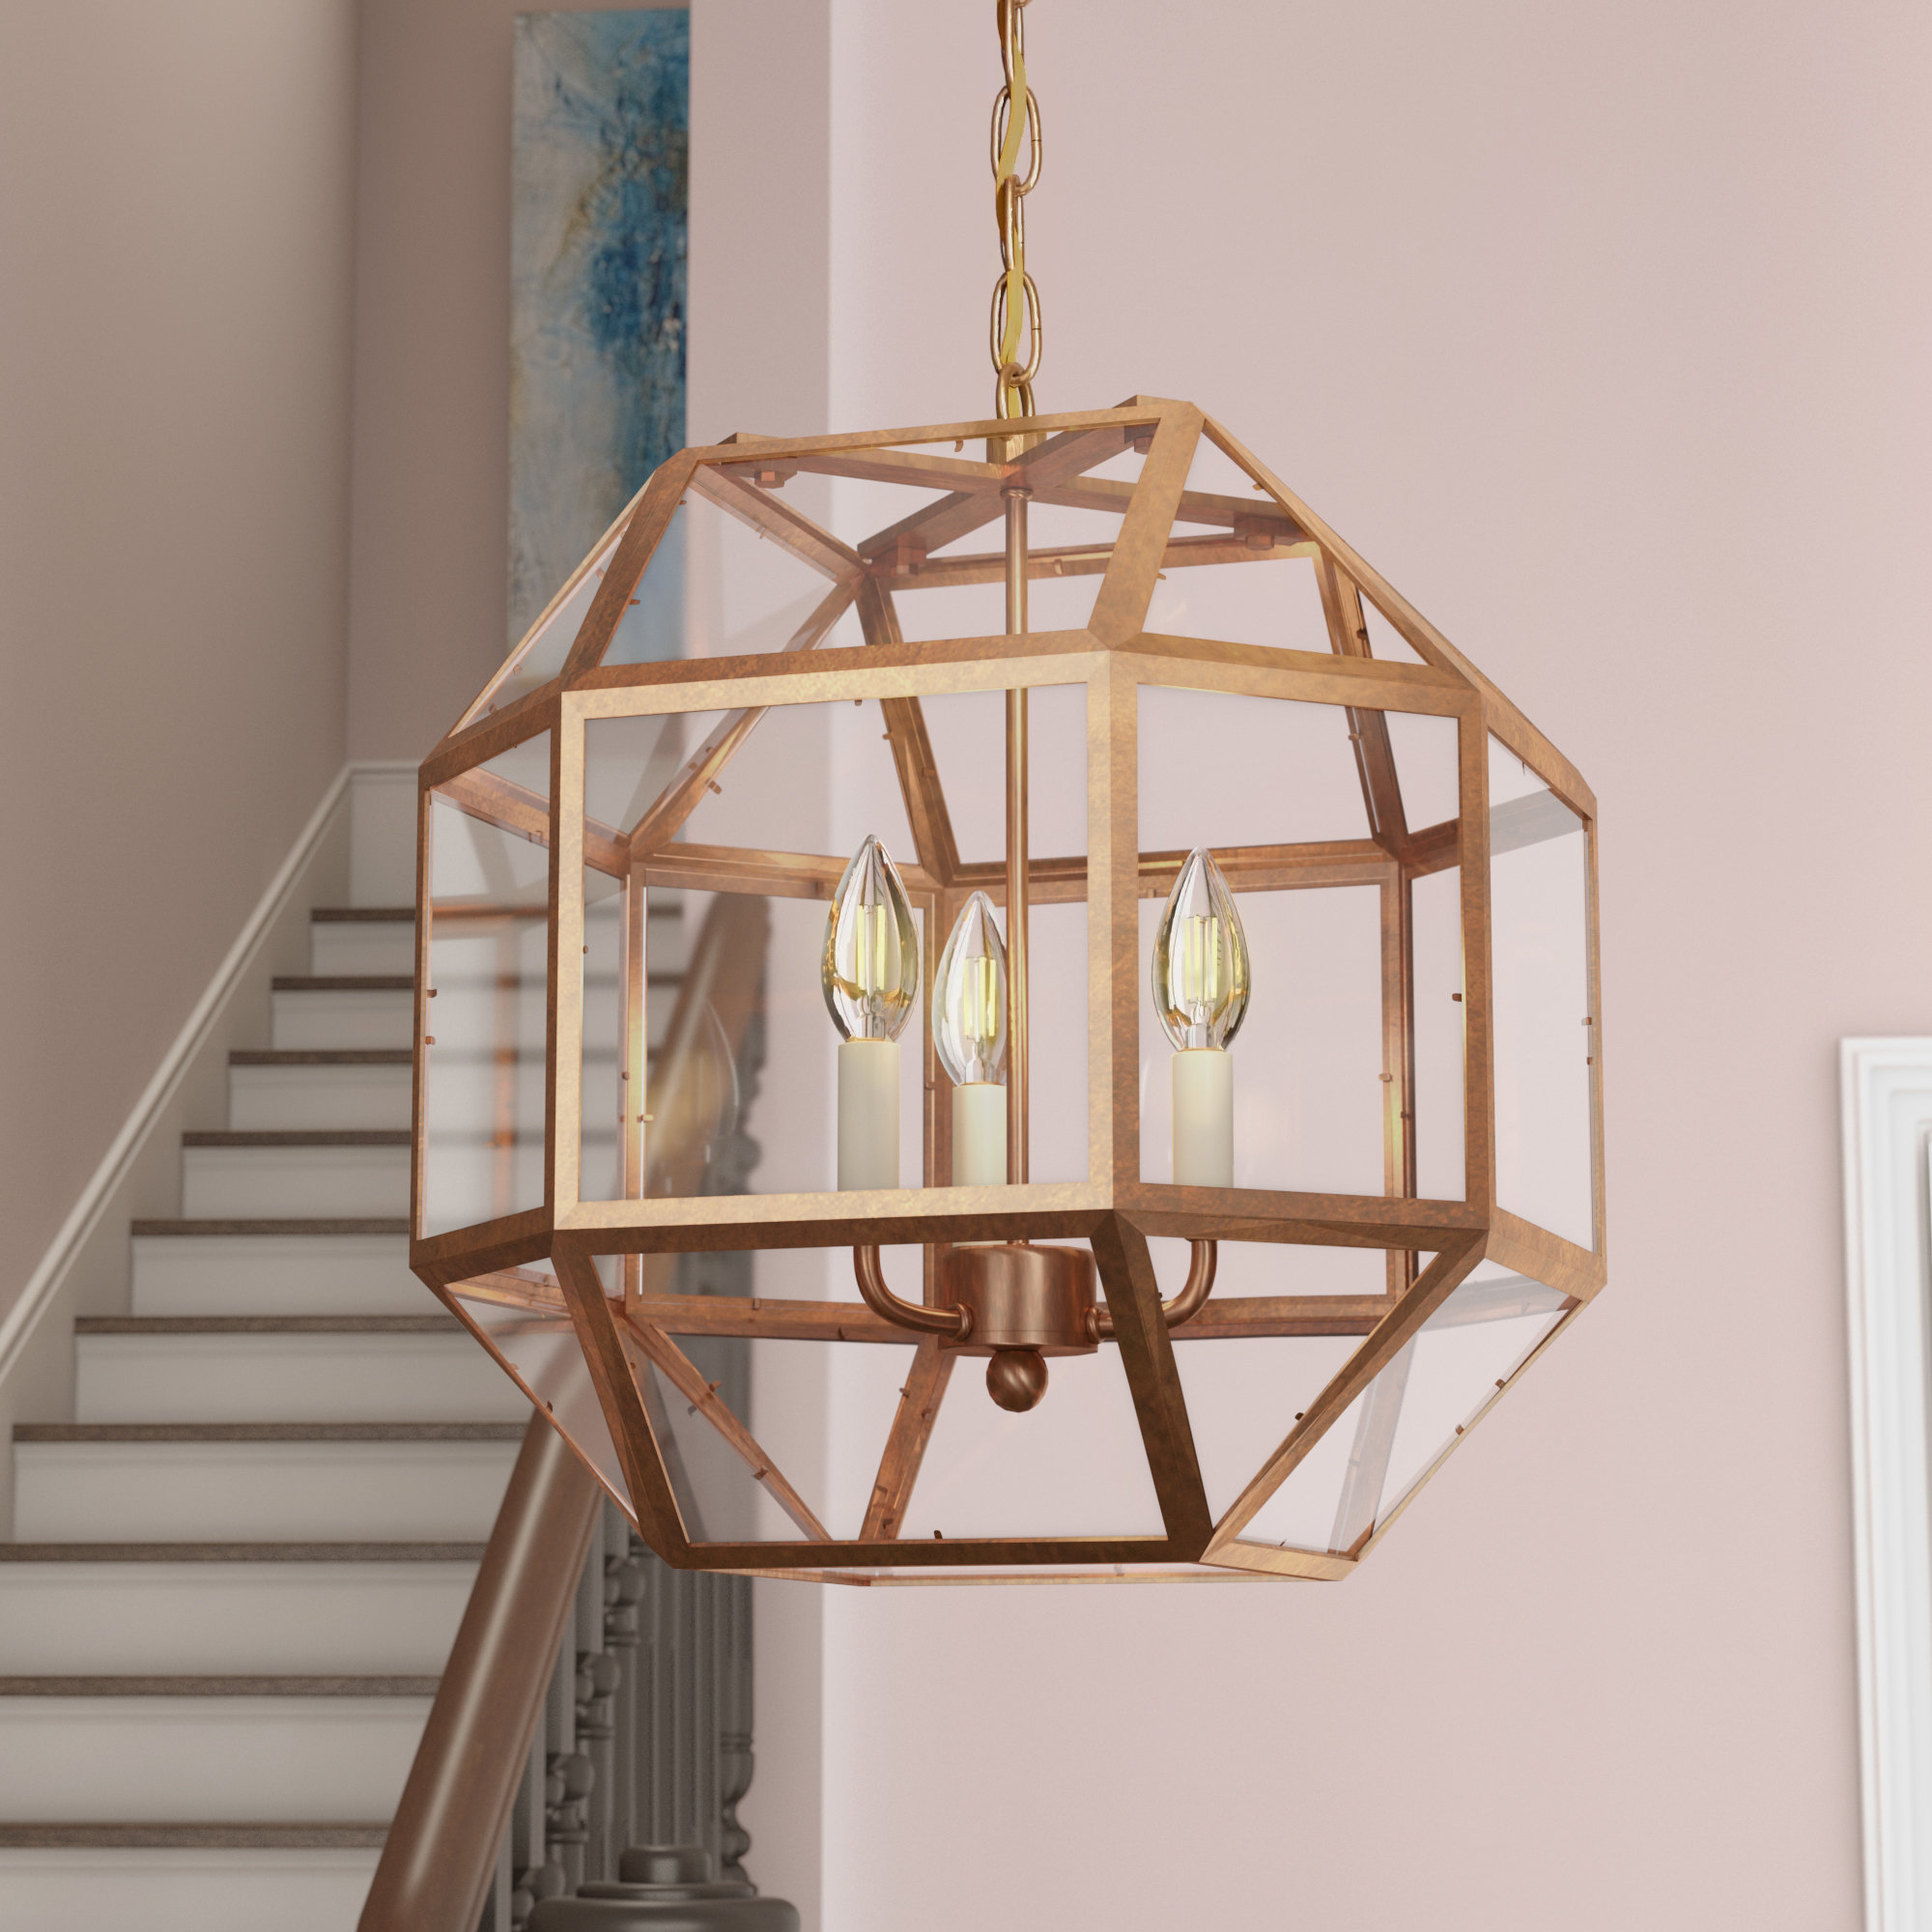 [%geometric Chandeliers Sale – Up To 65% Off Until September Throughout 2019 Tabit 5 Light Geometric Chandeliers|tabit 5 Light Geometric Chandeliers Intended For Newest Geometric Chandeliers Sale – Up To 65% Off Until September|well Known Tabit 5 Light Geometric Chandeliers In Geometric Chandeliers Sale – Up To 65% Off Until September|trendy Geometric Chandeliers Sale – Up To 65% Off Until September Inside Tabit 5 Light Geometric Chandeliers%] (View 18 of 20)